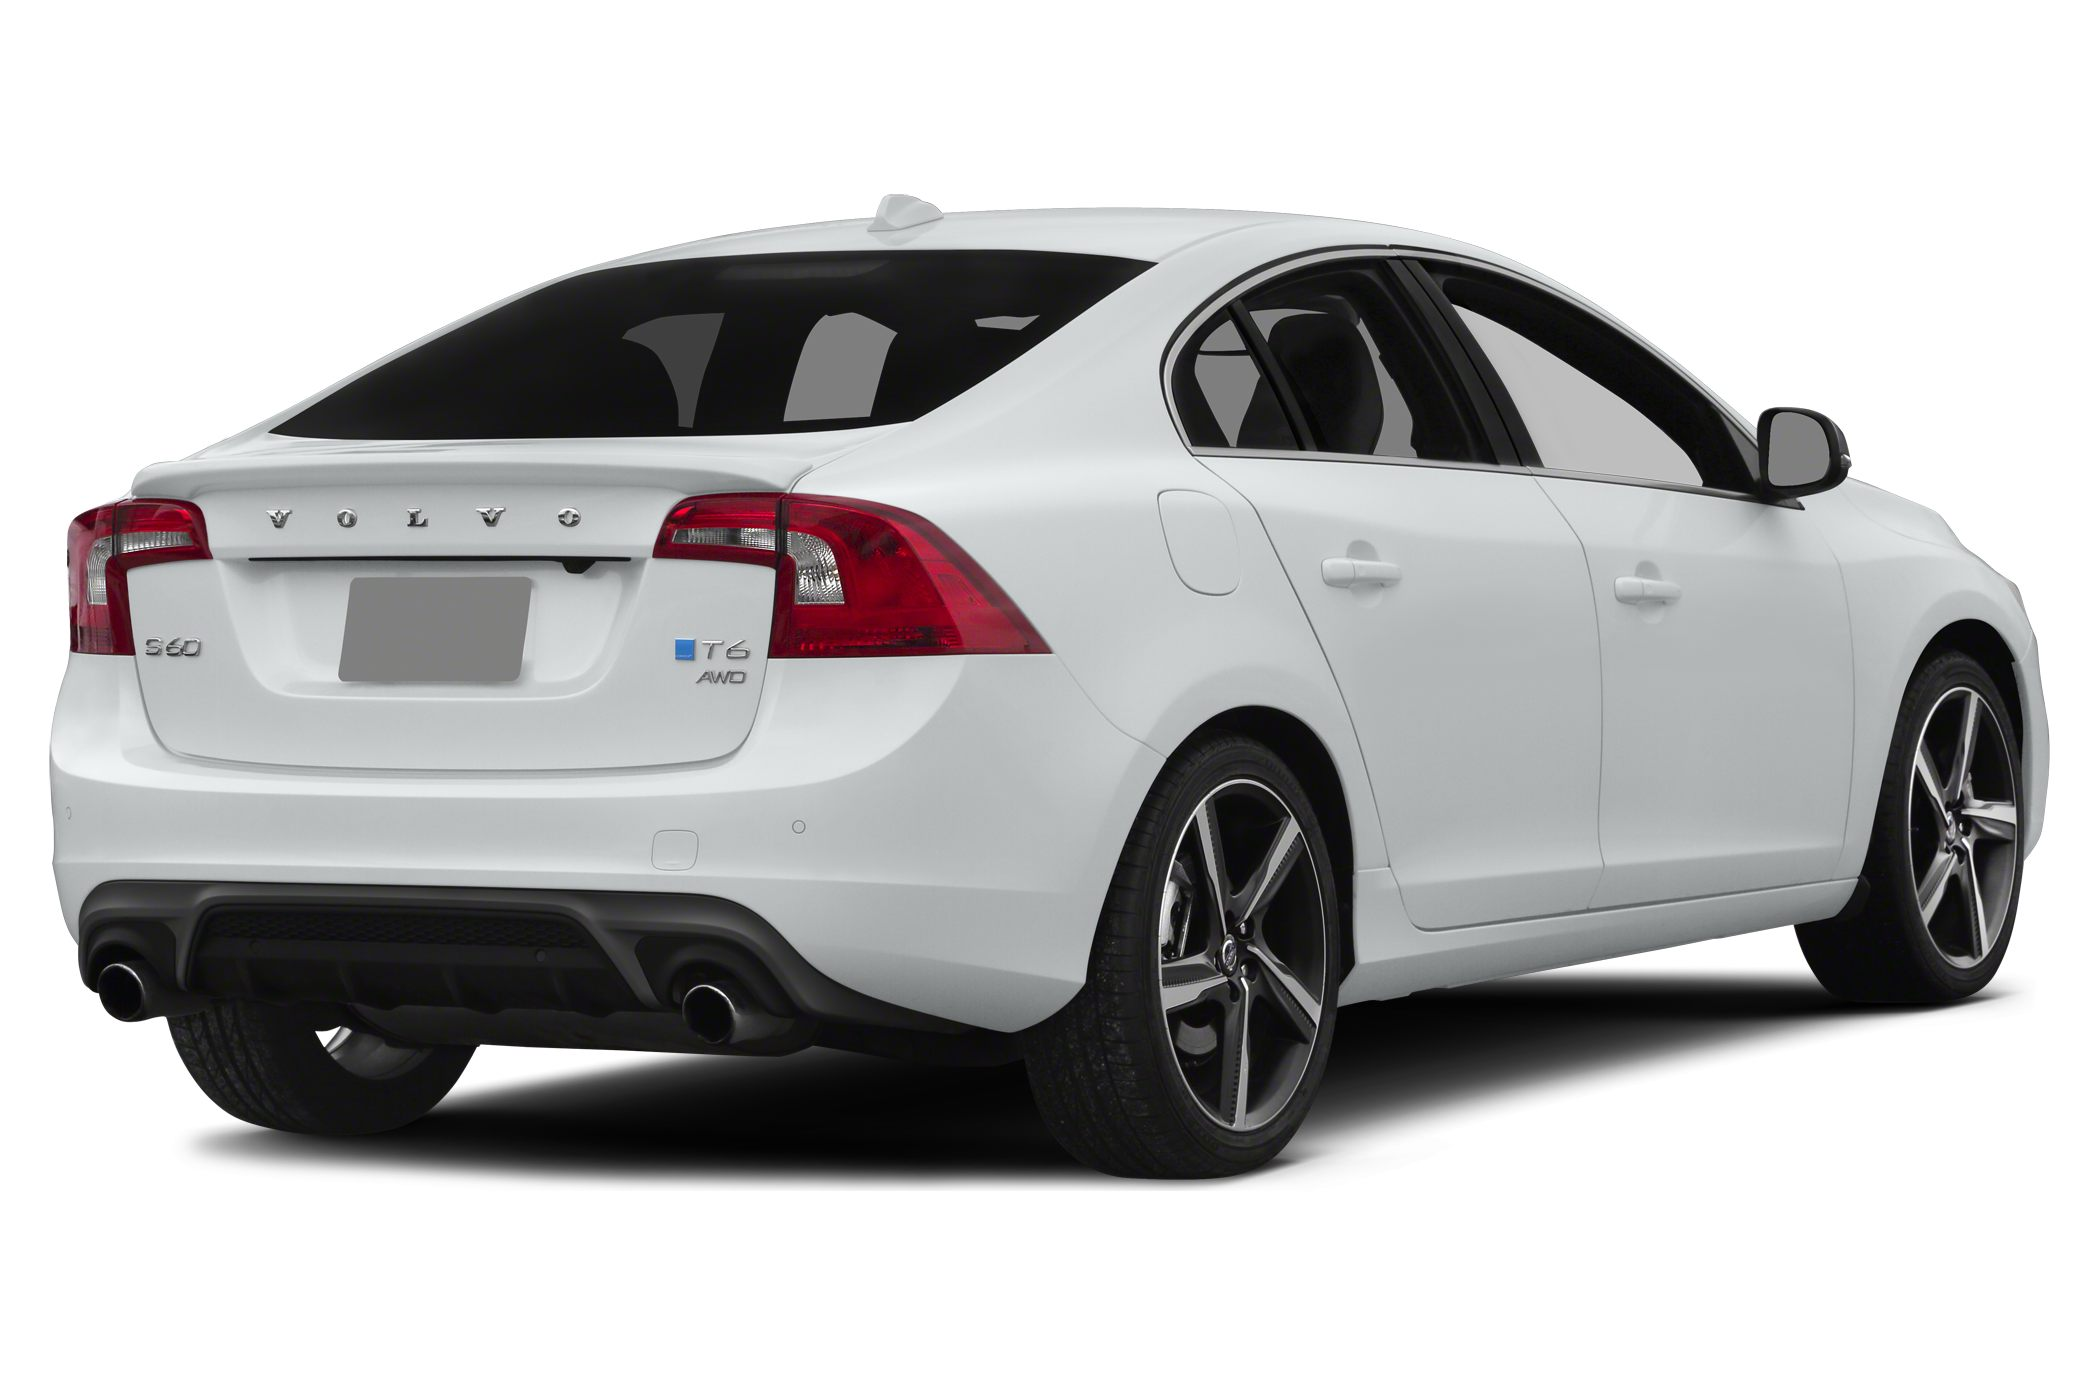 2015 5 volvo s60 t6 r design platinum 4dr all wheel drive sedan pictures. Black Bedroom Furniture Sets. Home Design Ideas